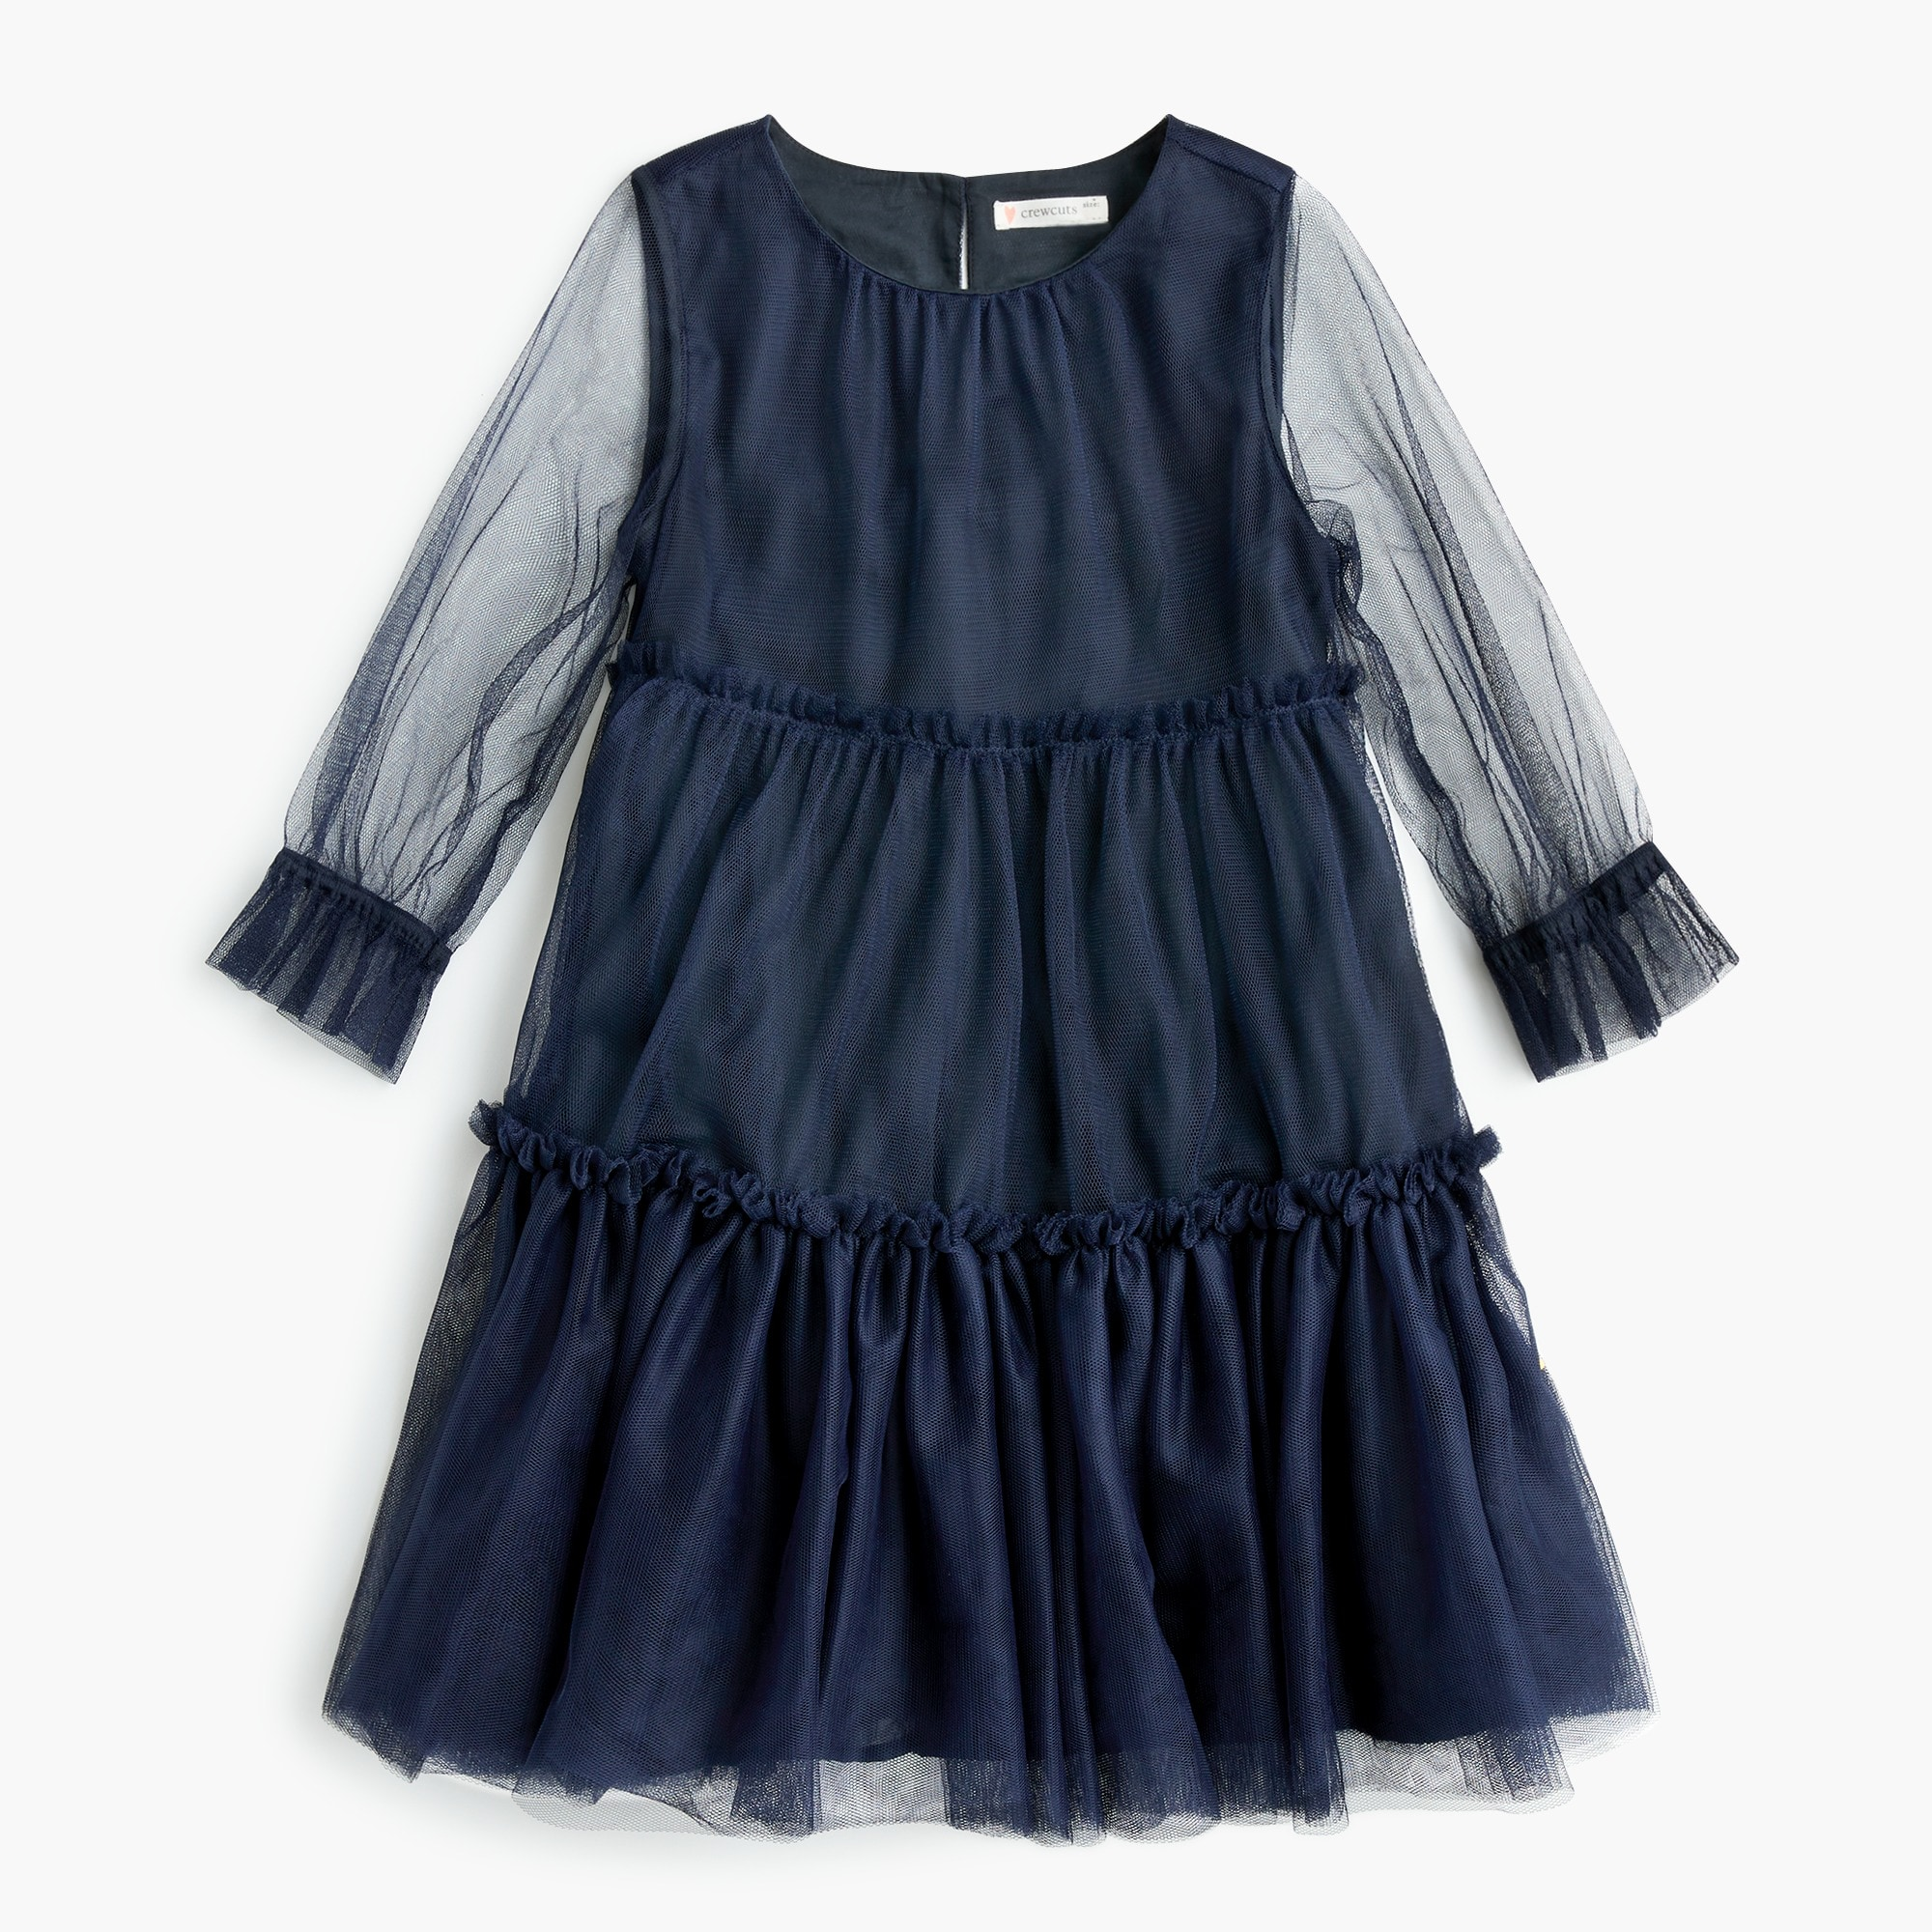 Image 2 for Girls' dress with tiered tulle overlay